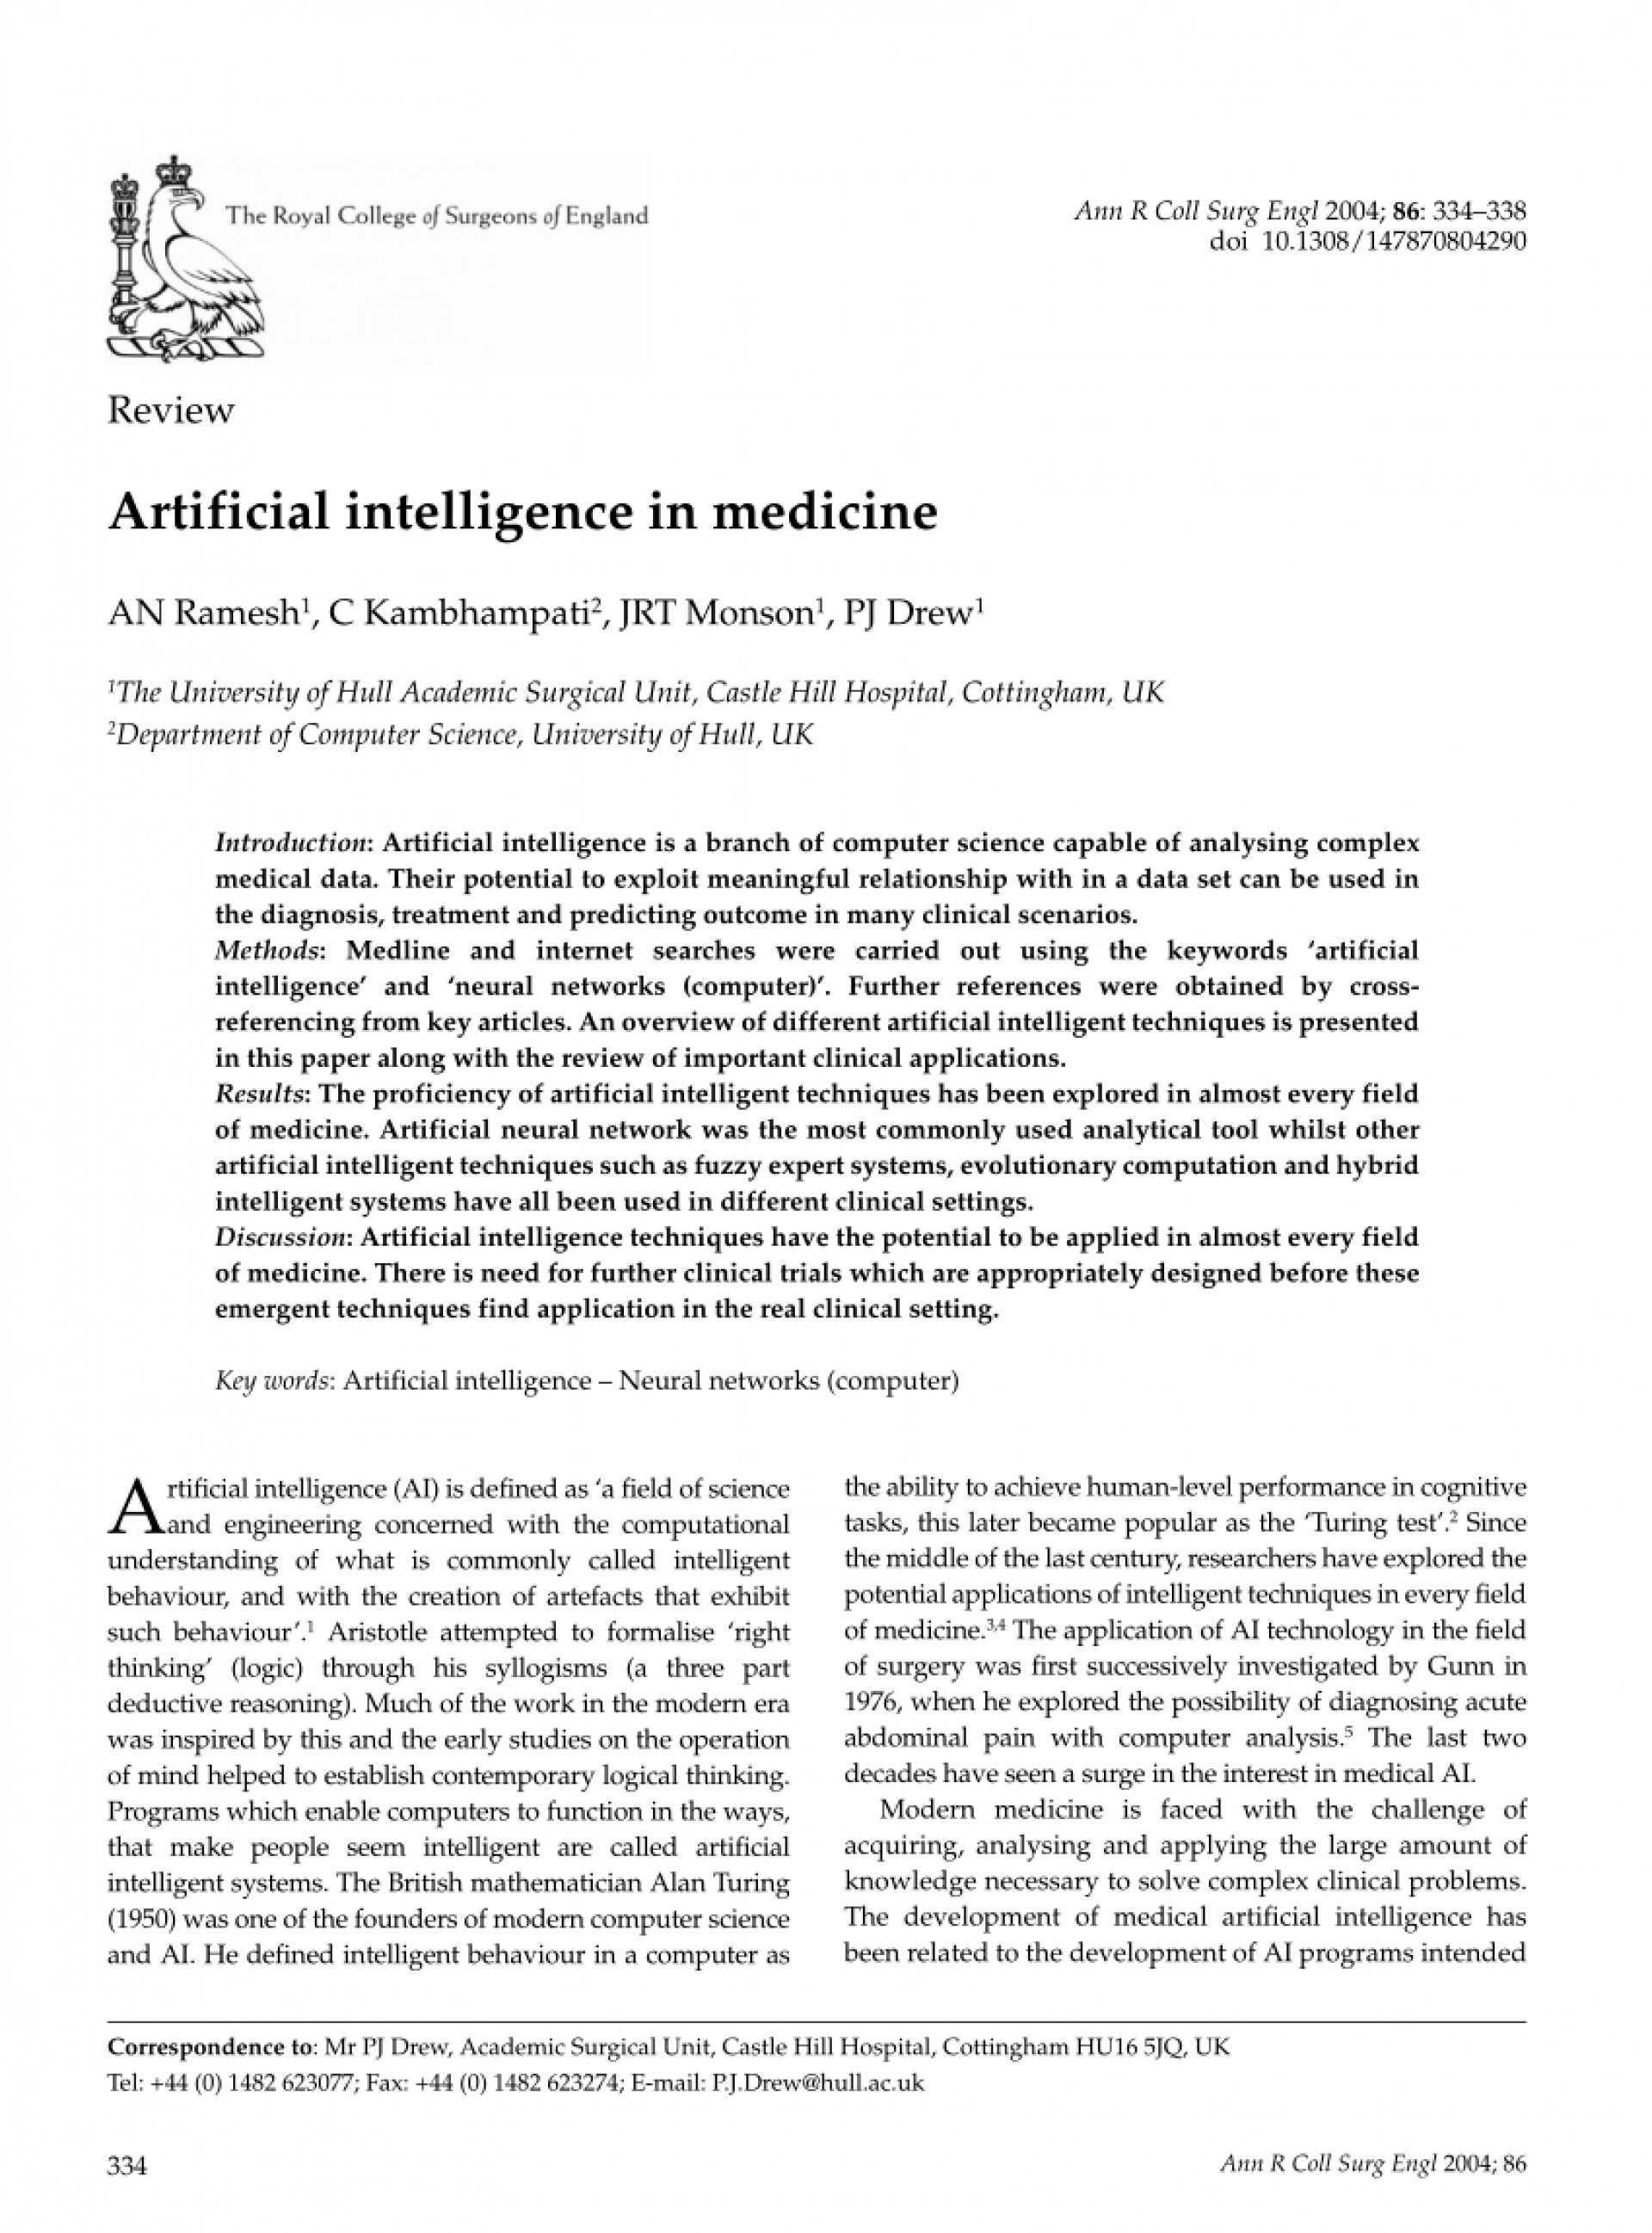 004 Researchs Artificial Intelligence Largepreview Imposing Research Papers On In Marketing Ieee Pdf 1920